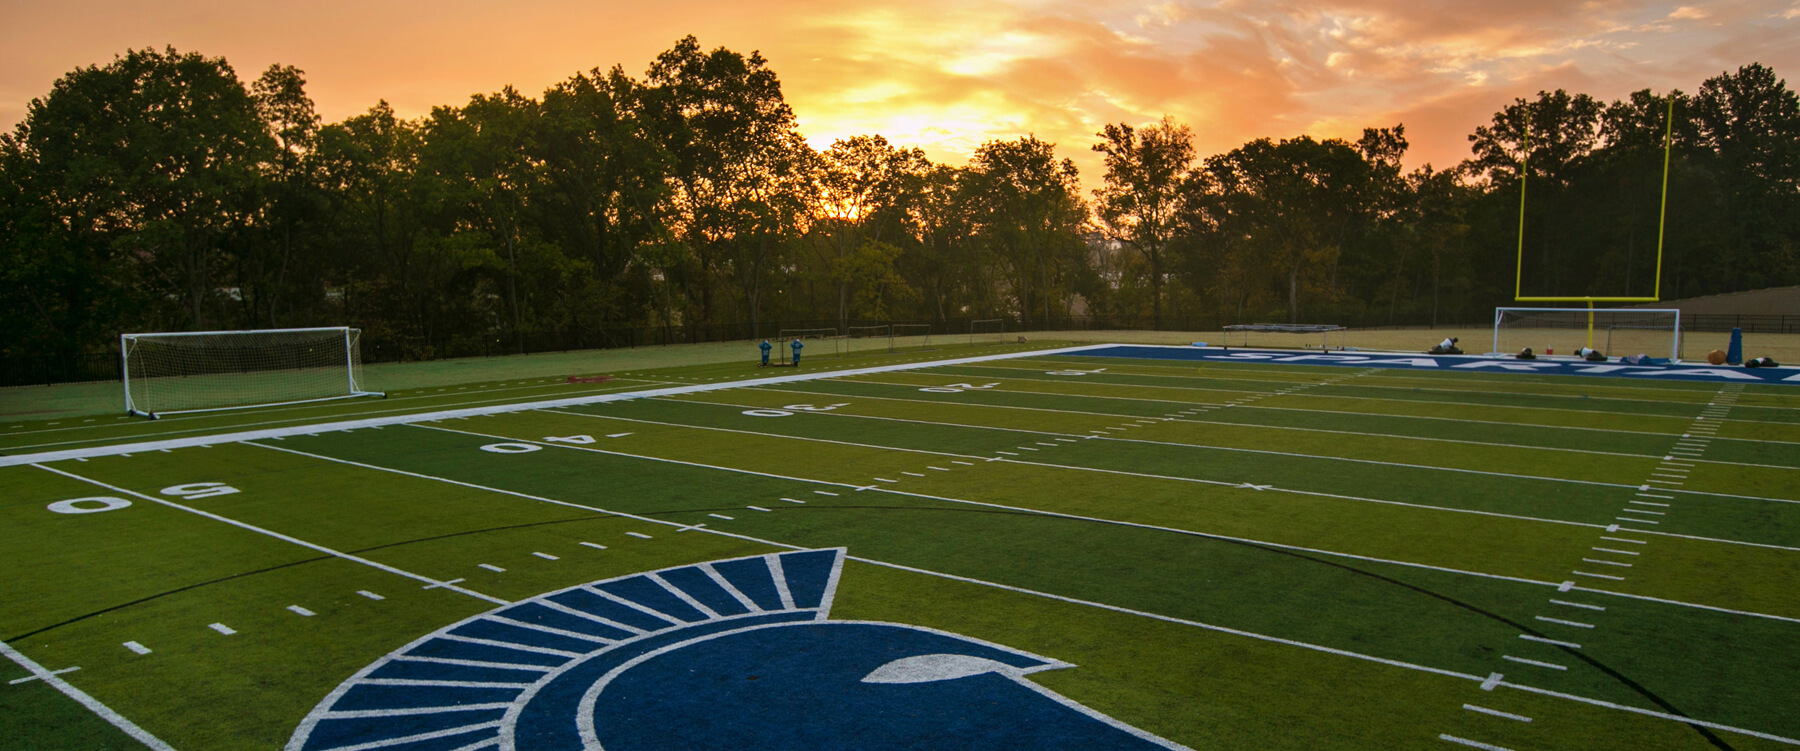 MBU athletic field